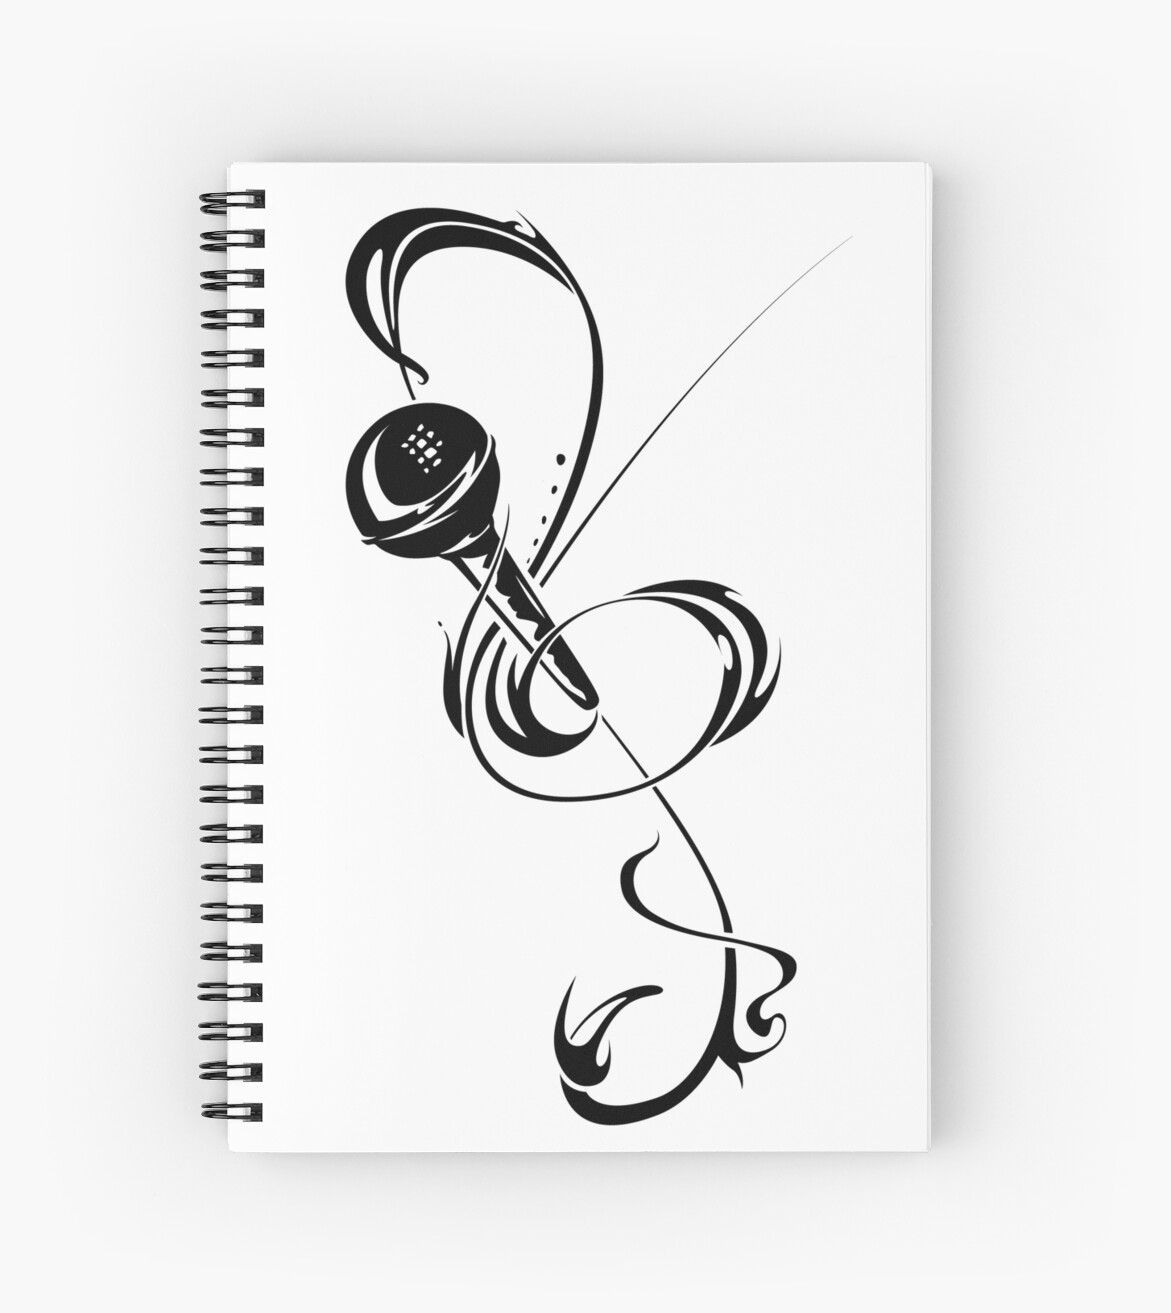 Treble clef / mic by morning light